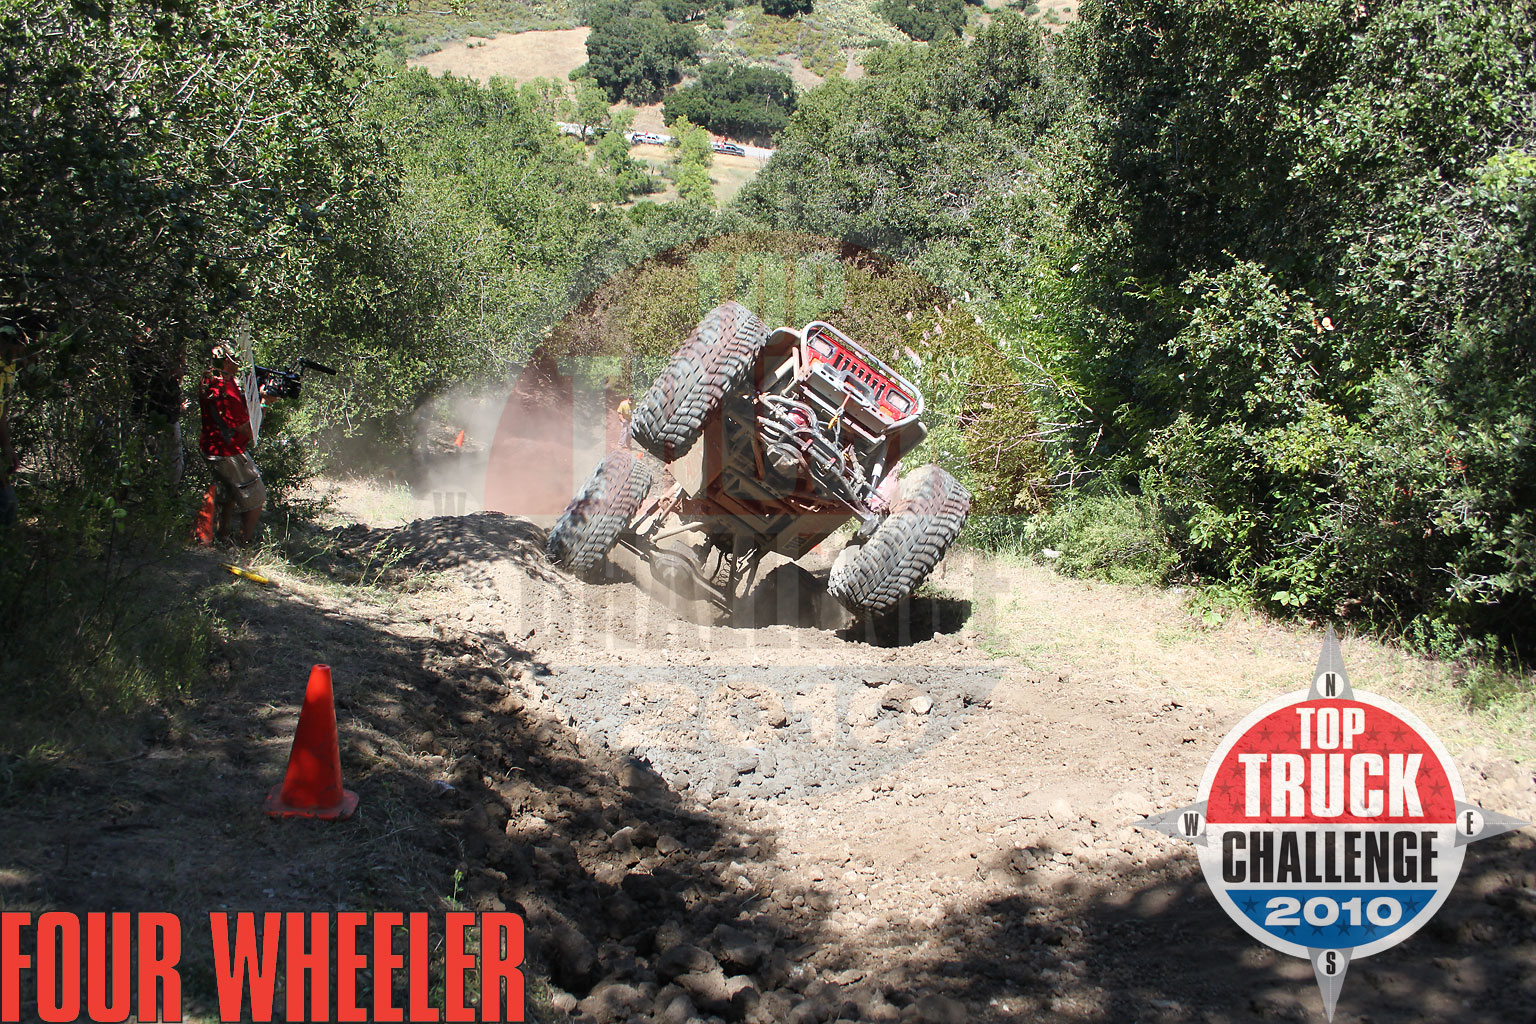 129 1006 4802+2010 top truck challenge hill climb+mike karwath 2009 tube chassis yj buggy